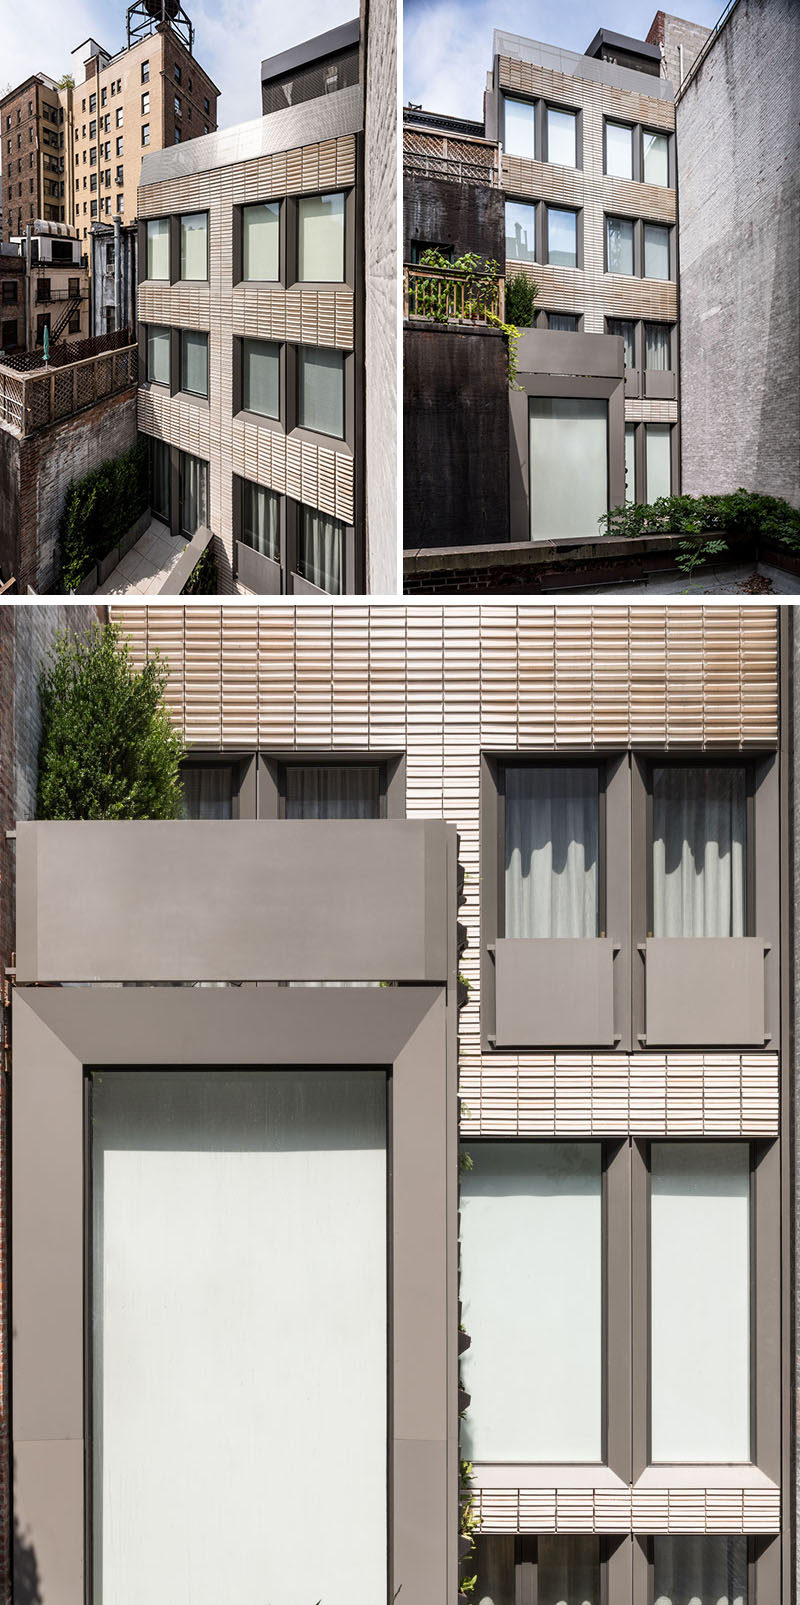 The terra cotta rear facade of this row house is accented by aluminum window trims with integral Juliet balconies that emphasize the depth of the facade and frames the oversized windows and patio doors. #Facade #RowHouse